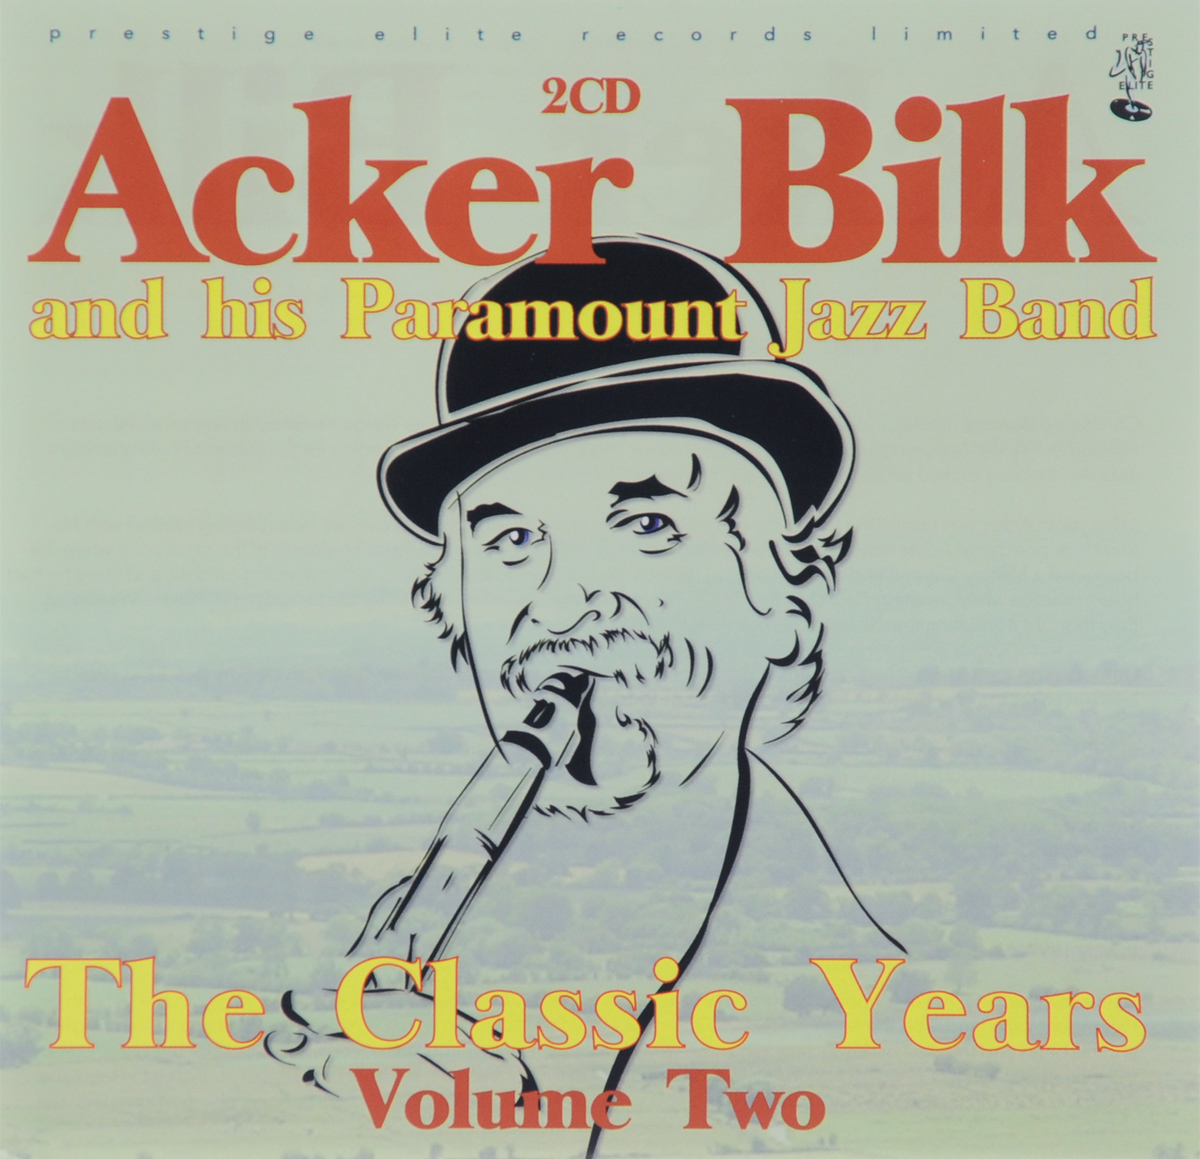 Acker Bilk and His Paramount Jazz Band Acker Bilk And His Paramount Jazz Band. Classic Years. Volume Two (2 CD) continuous band sealer 110v and 220v voltage avaliable